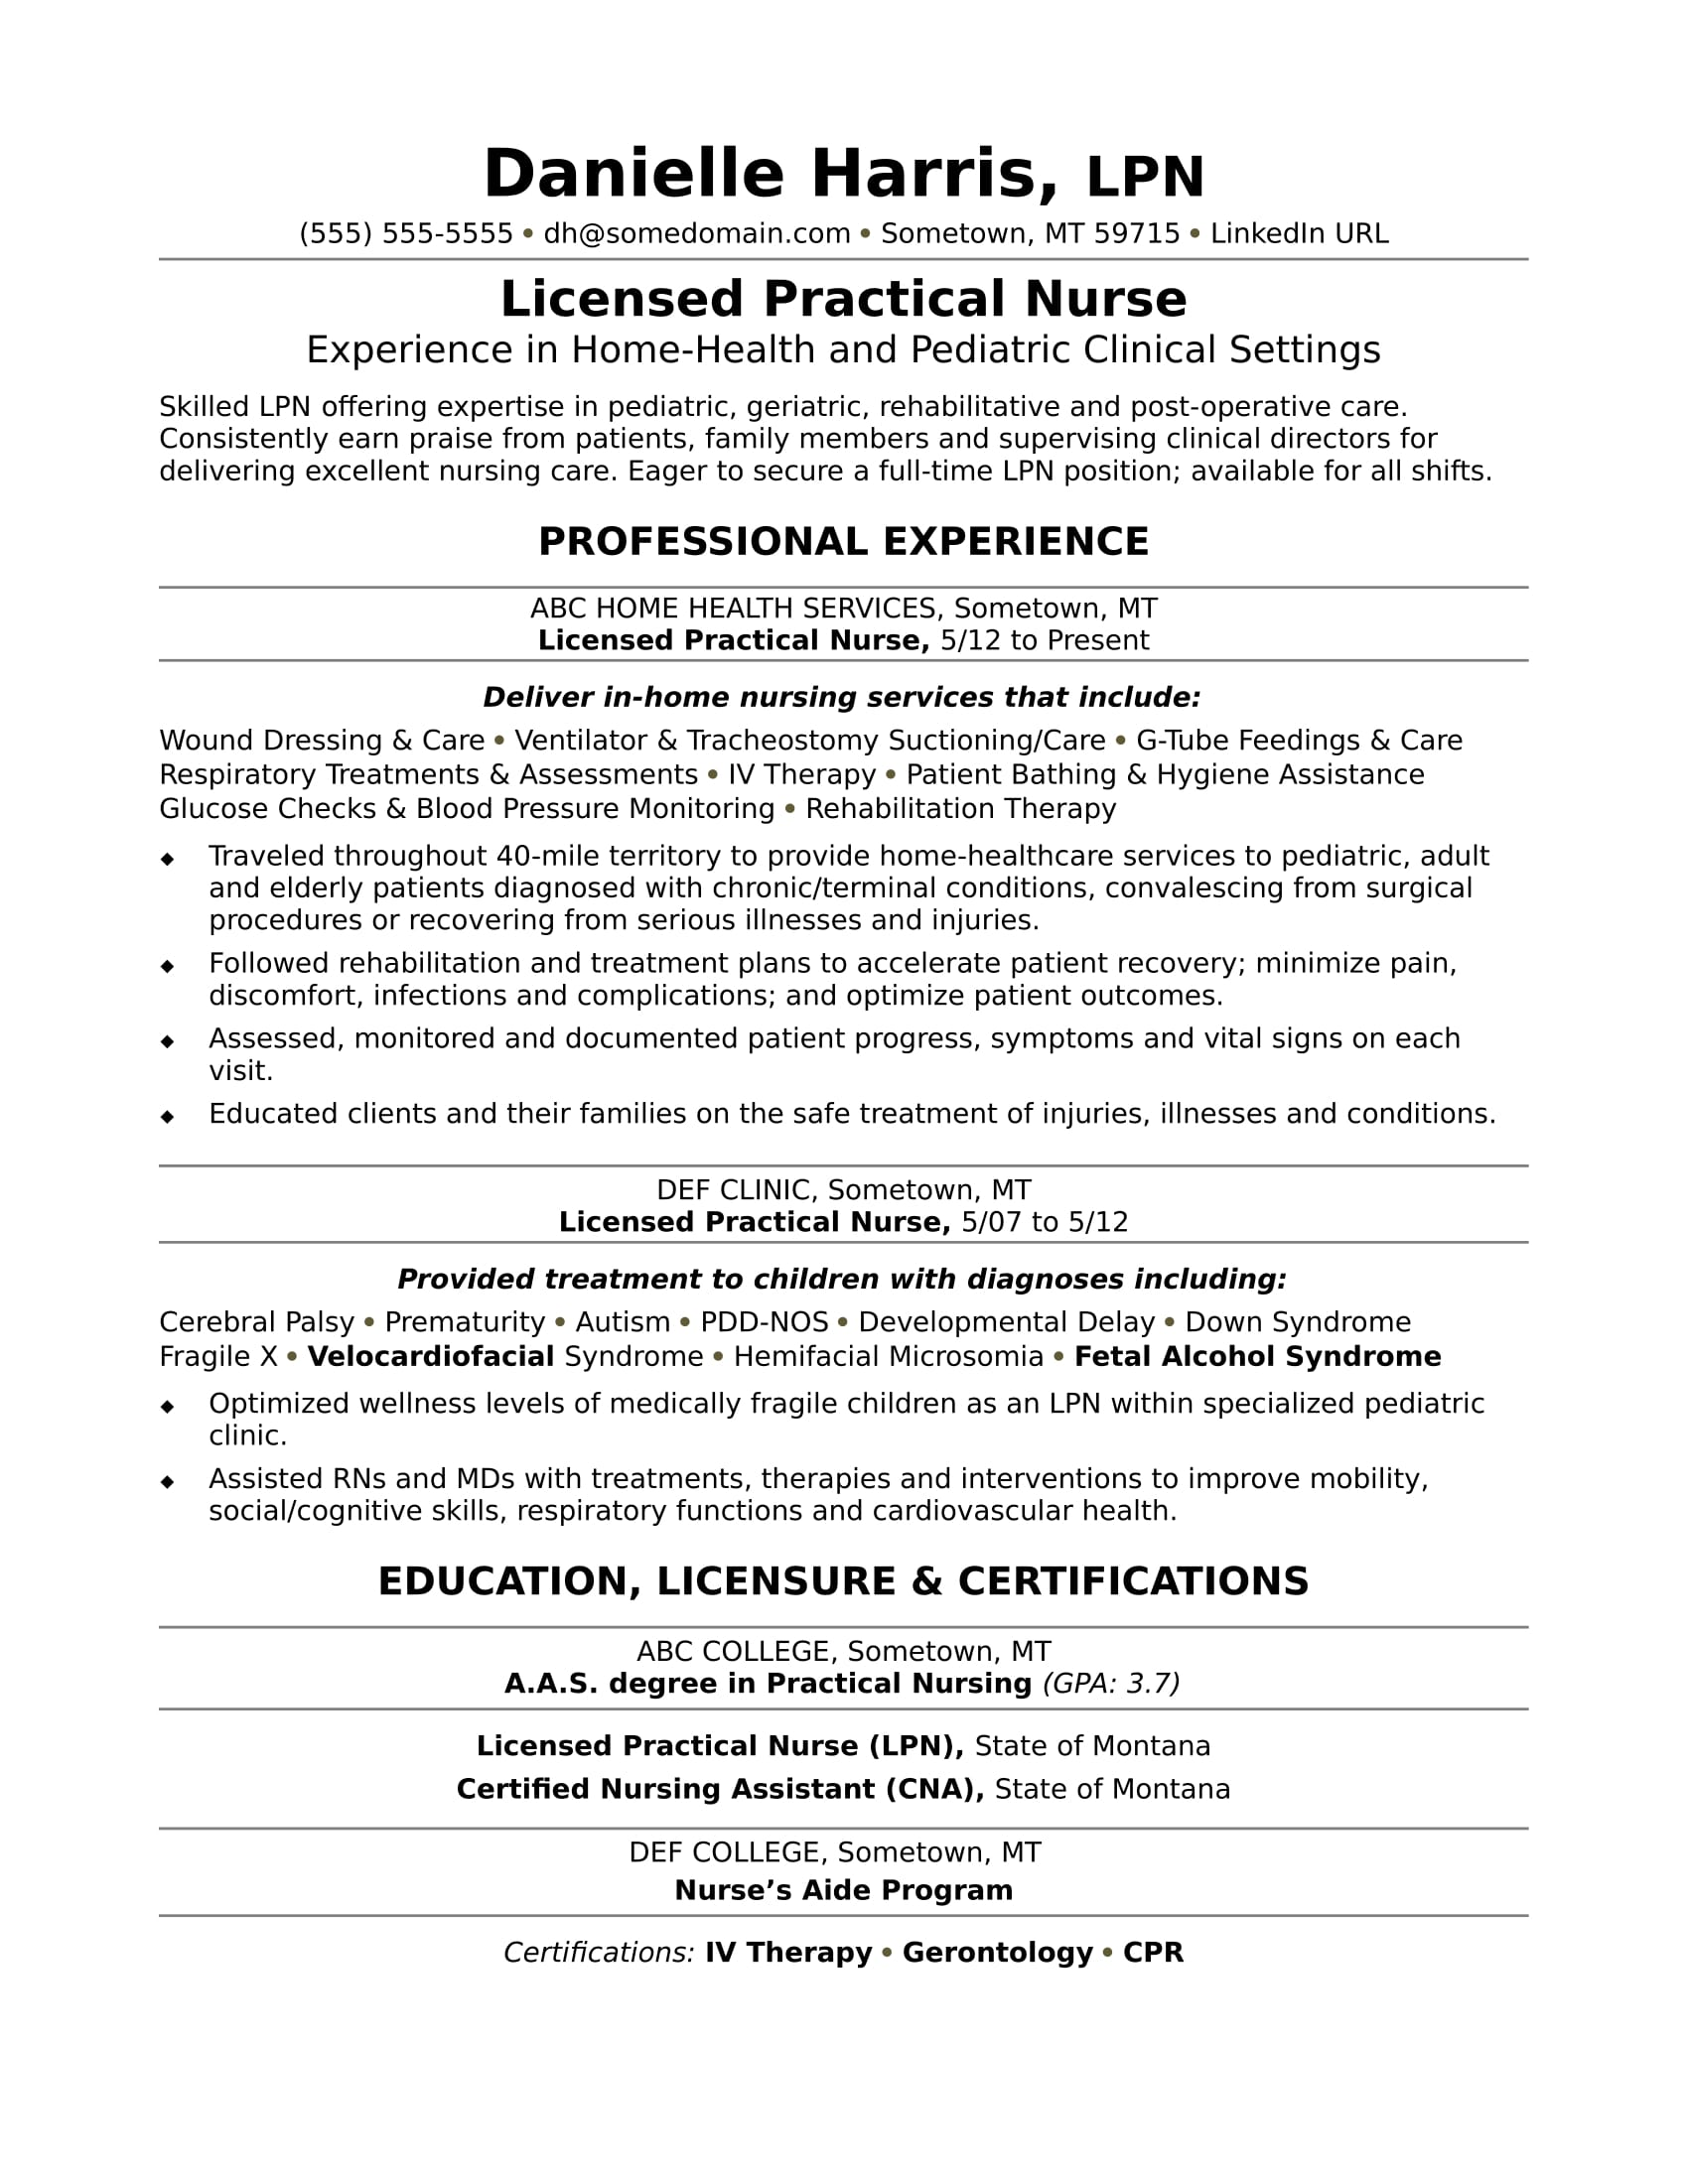 Licensed Practical Nurse Resume Sample  Nursing Resume Example